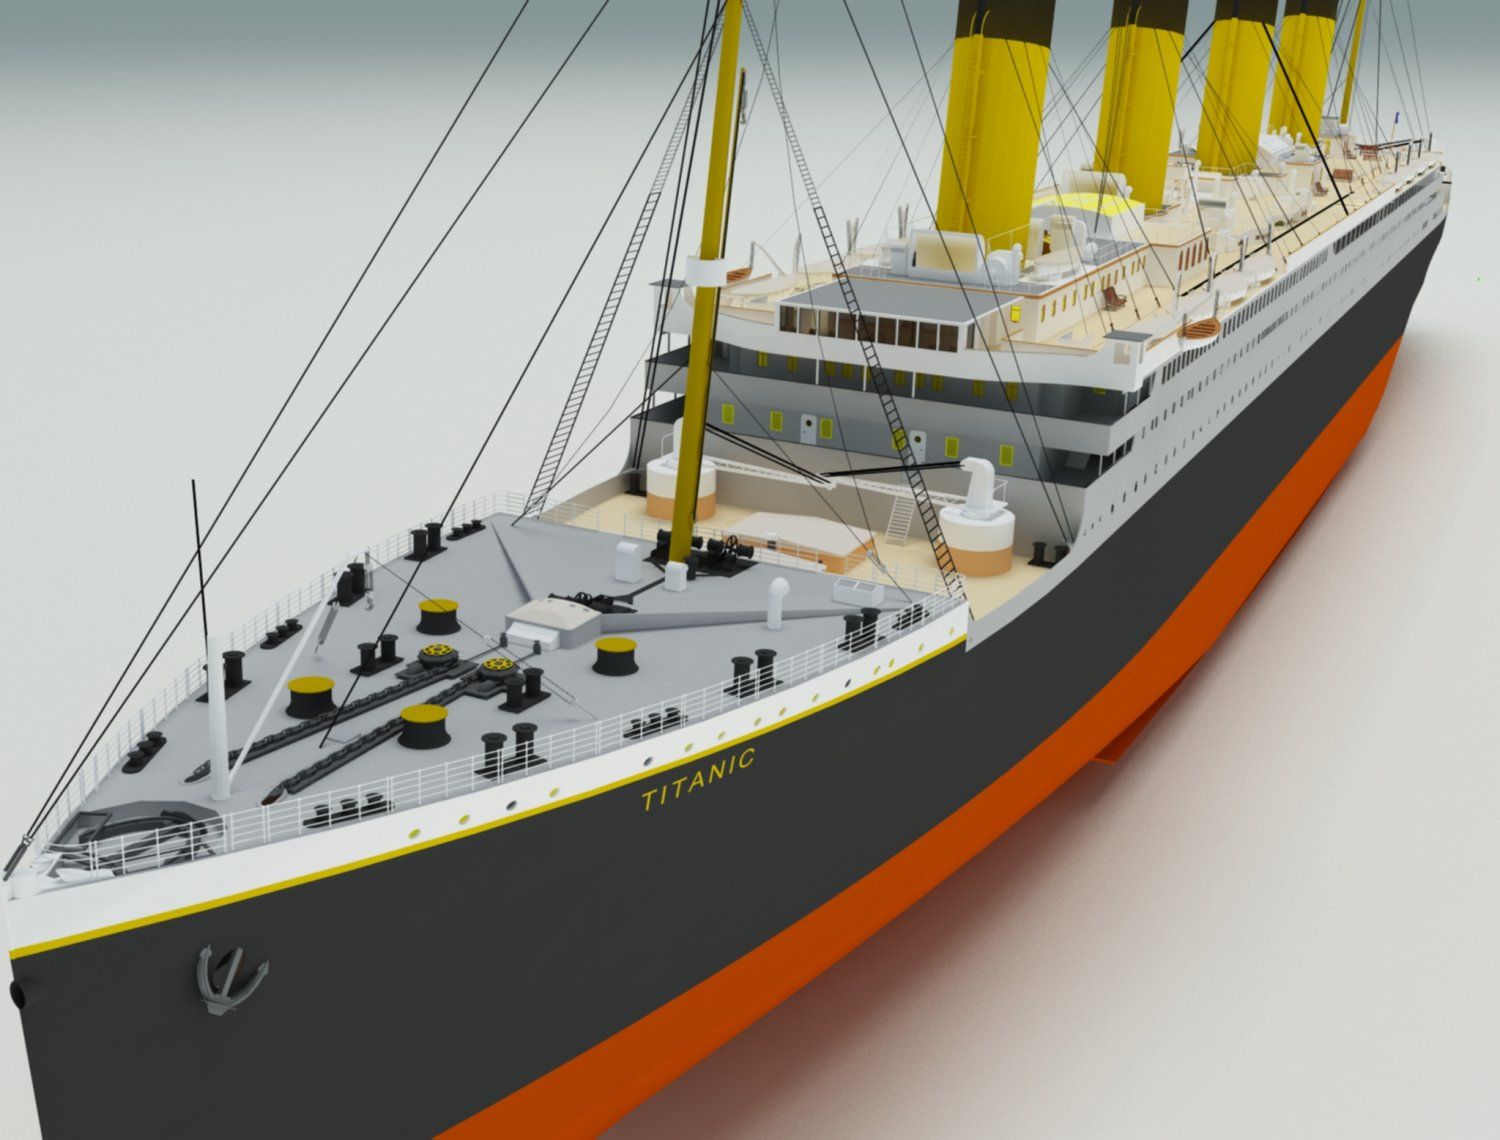 Titanic low poly 3D model